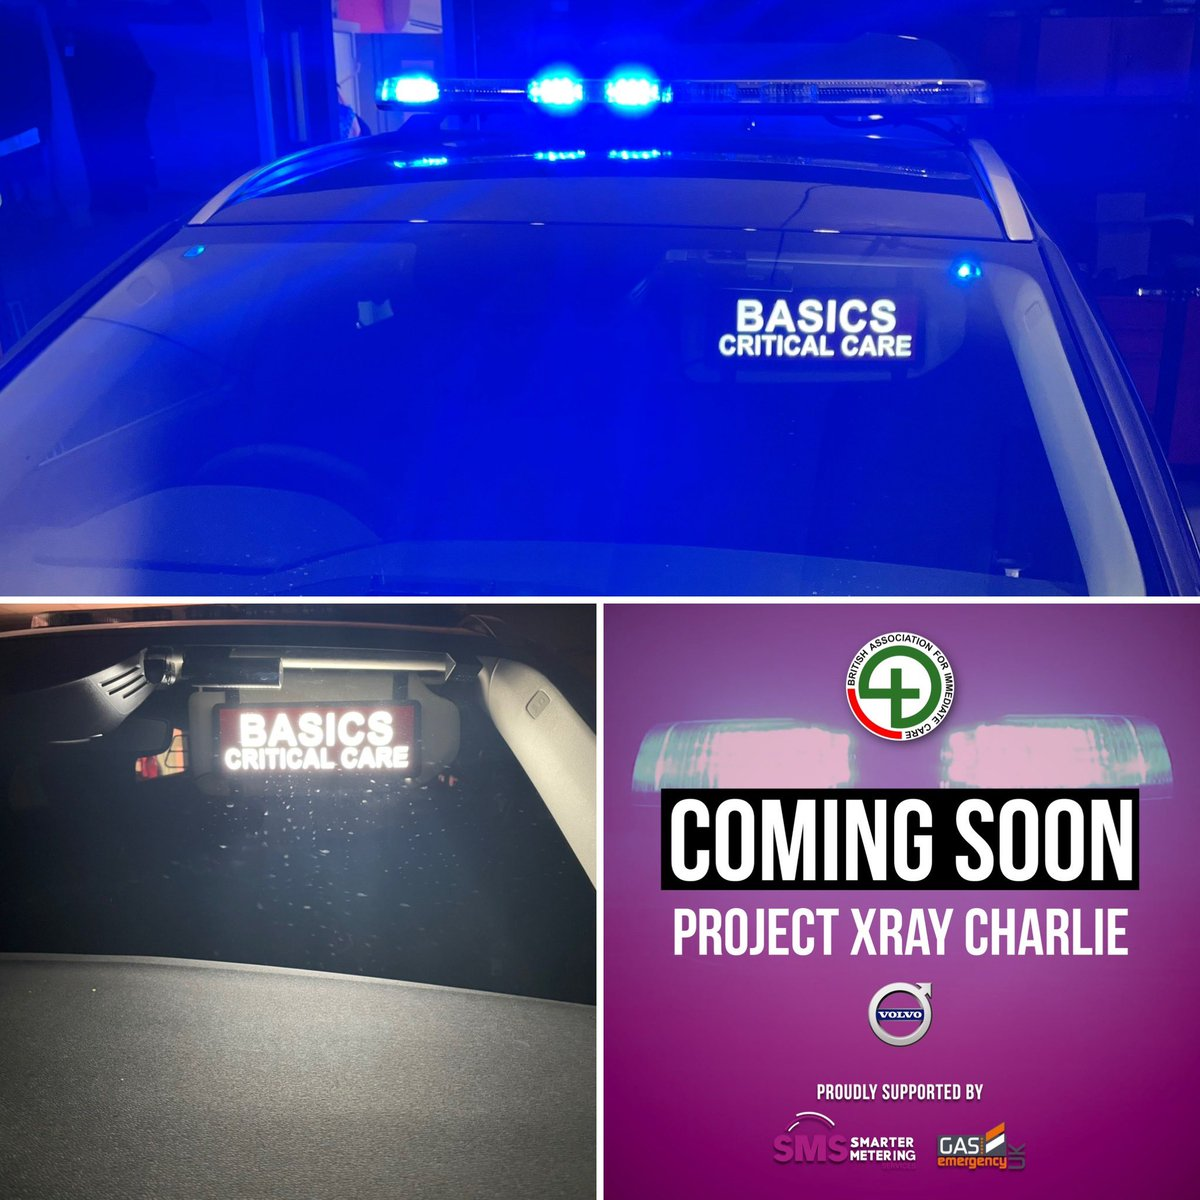 It's all in the little details and the planning don't you agree @BASICS_HQ.. thanks again to @SafeResponse for the superb turnaround on such a great visual aid!